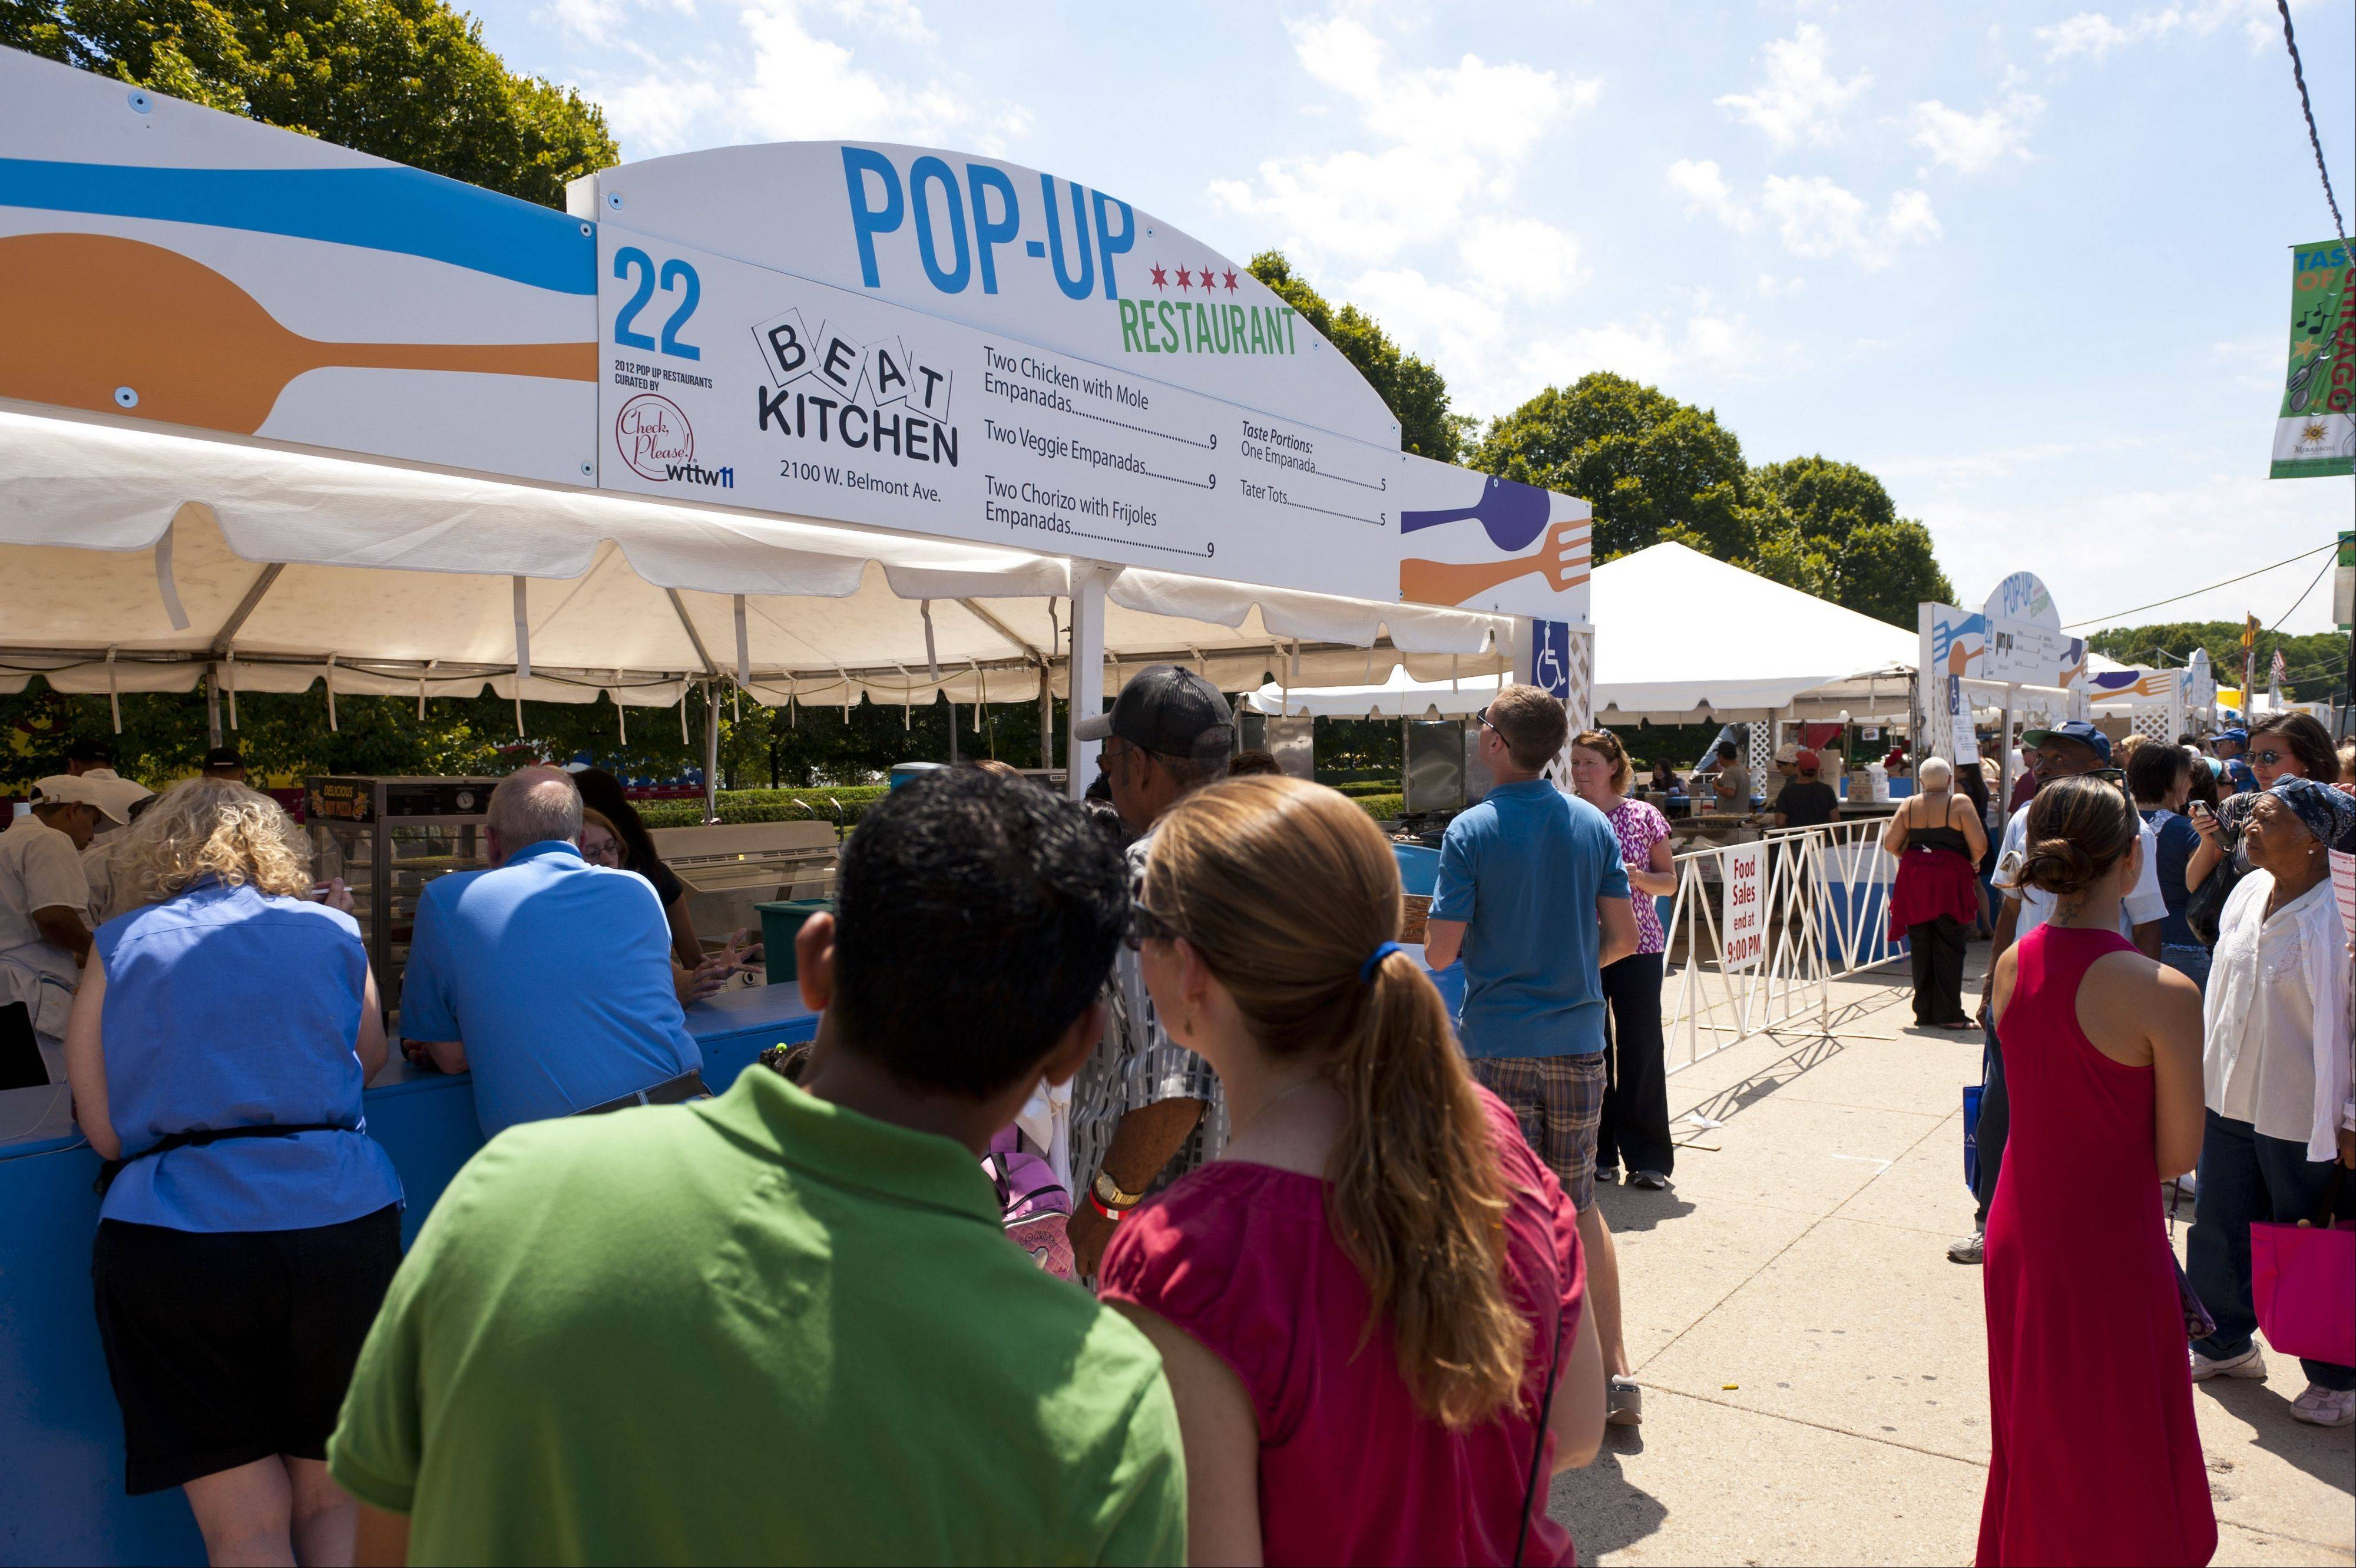 Pop-Up restaurants offer even more menu choices during the annual Taste of Chicago in Grant Park.